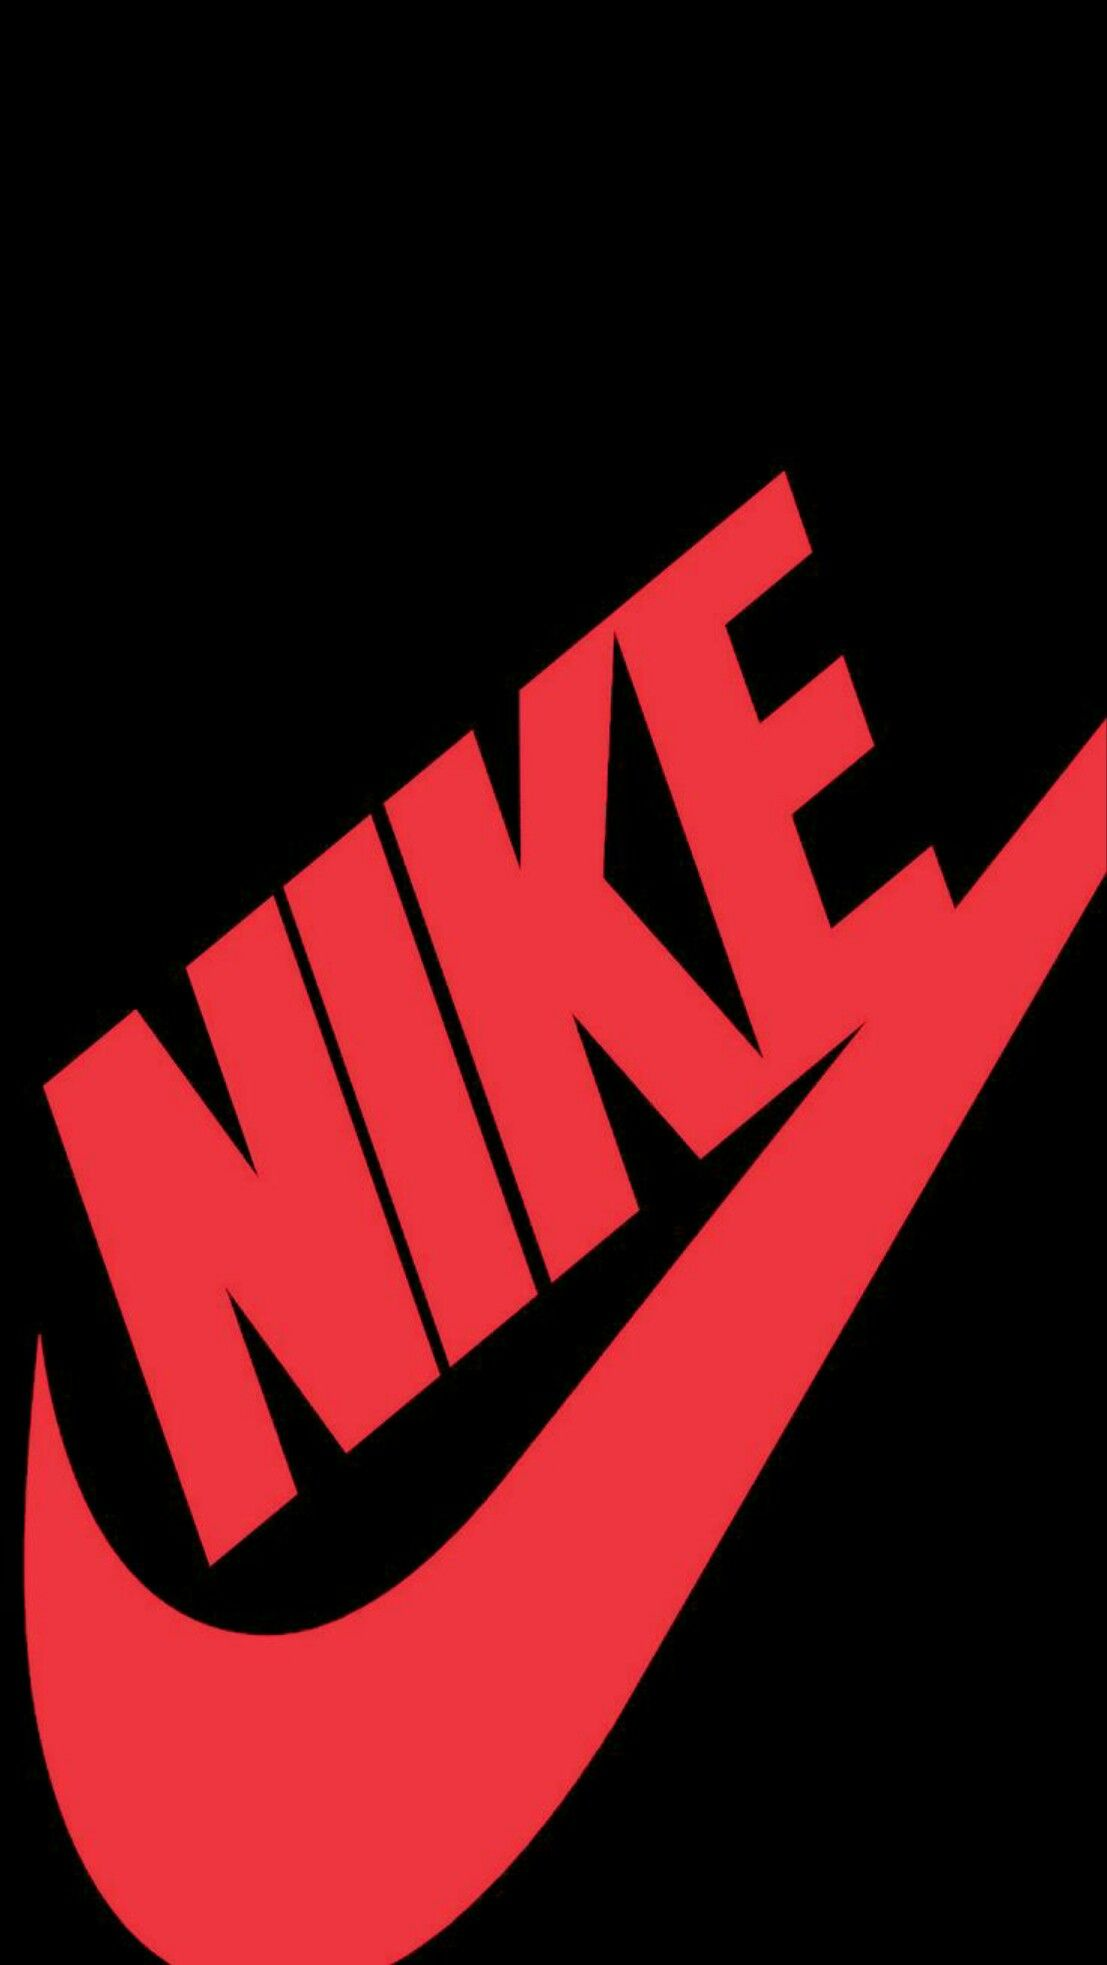 Nike Black Wallpaper IPhone Android